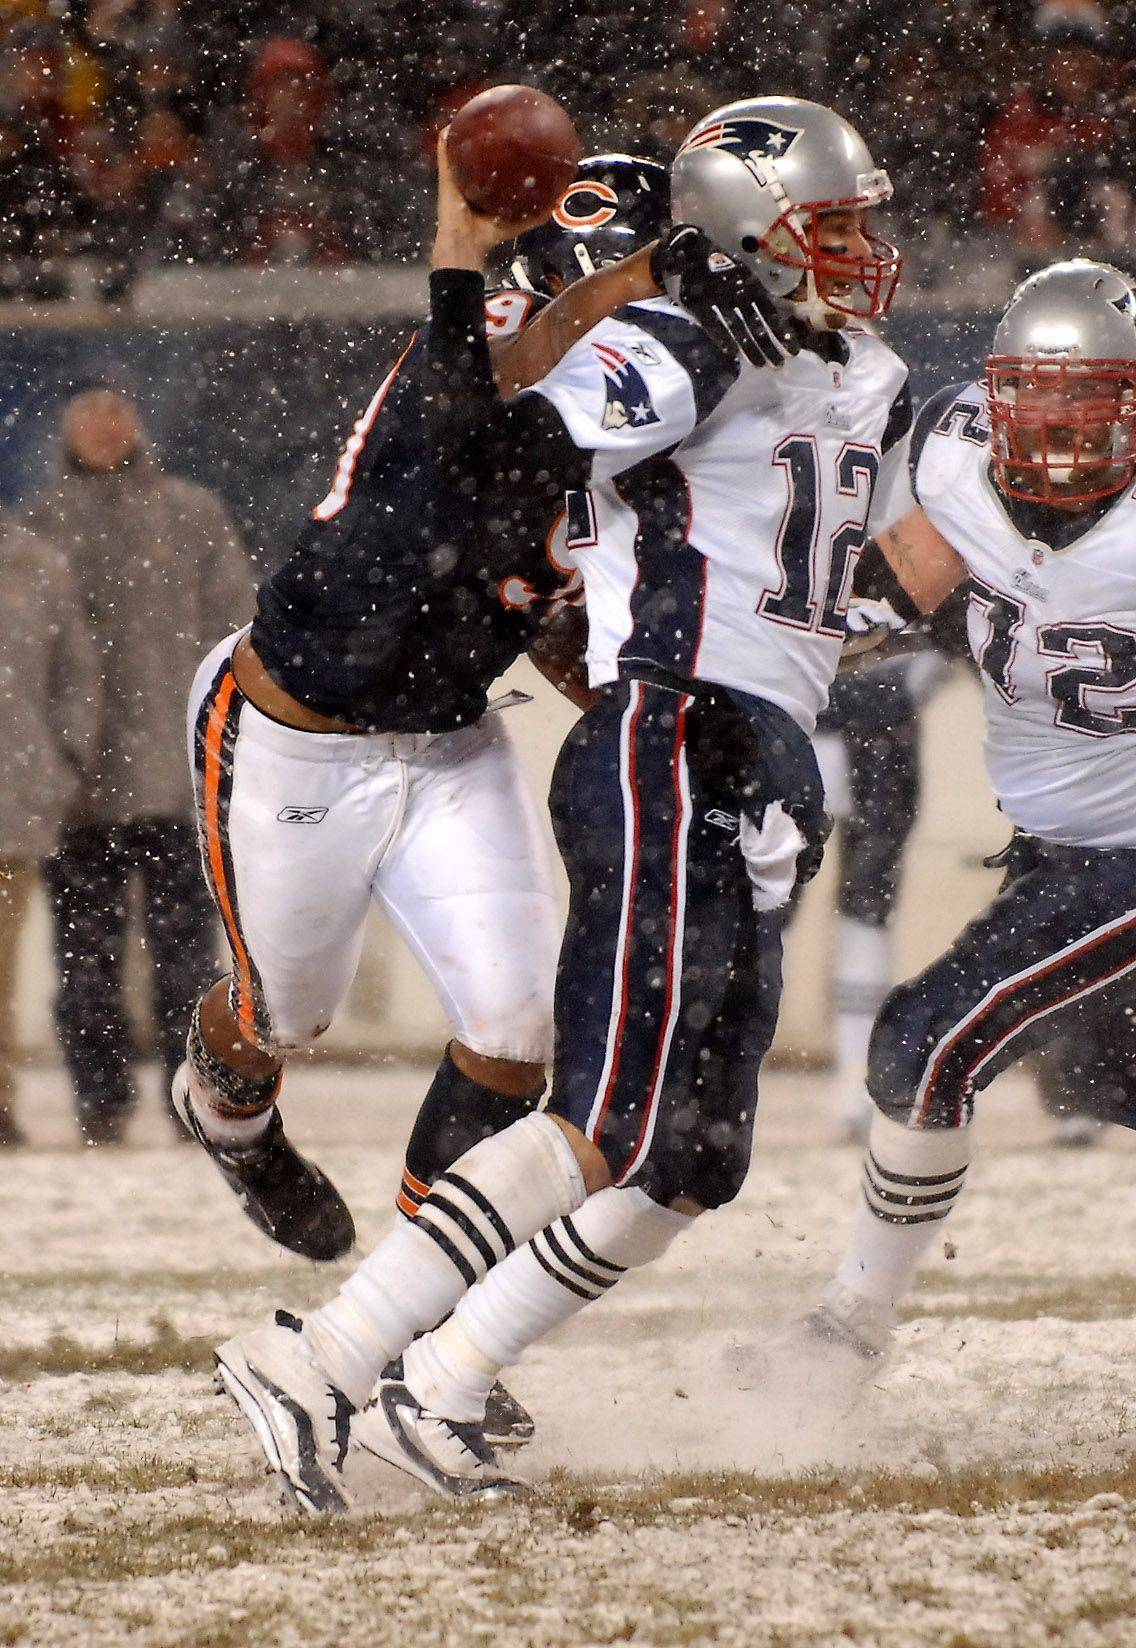 Chicago Bears defensive end Julius Peppers sacks New England Patriots quarterback Tom Brady.